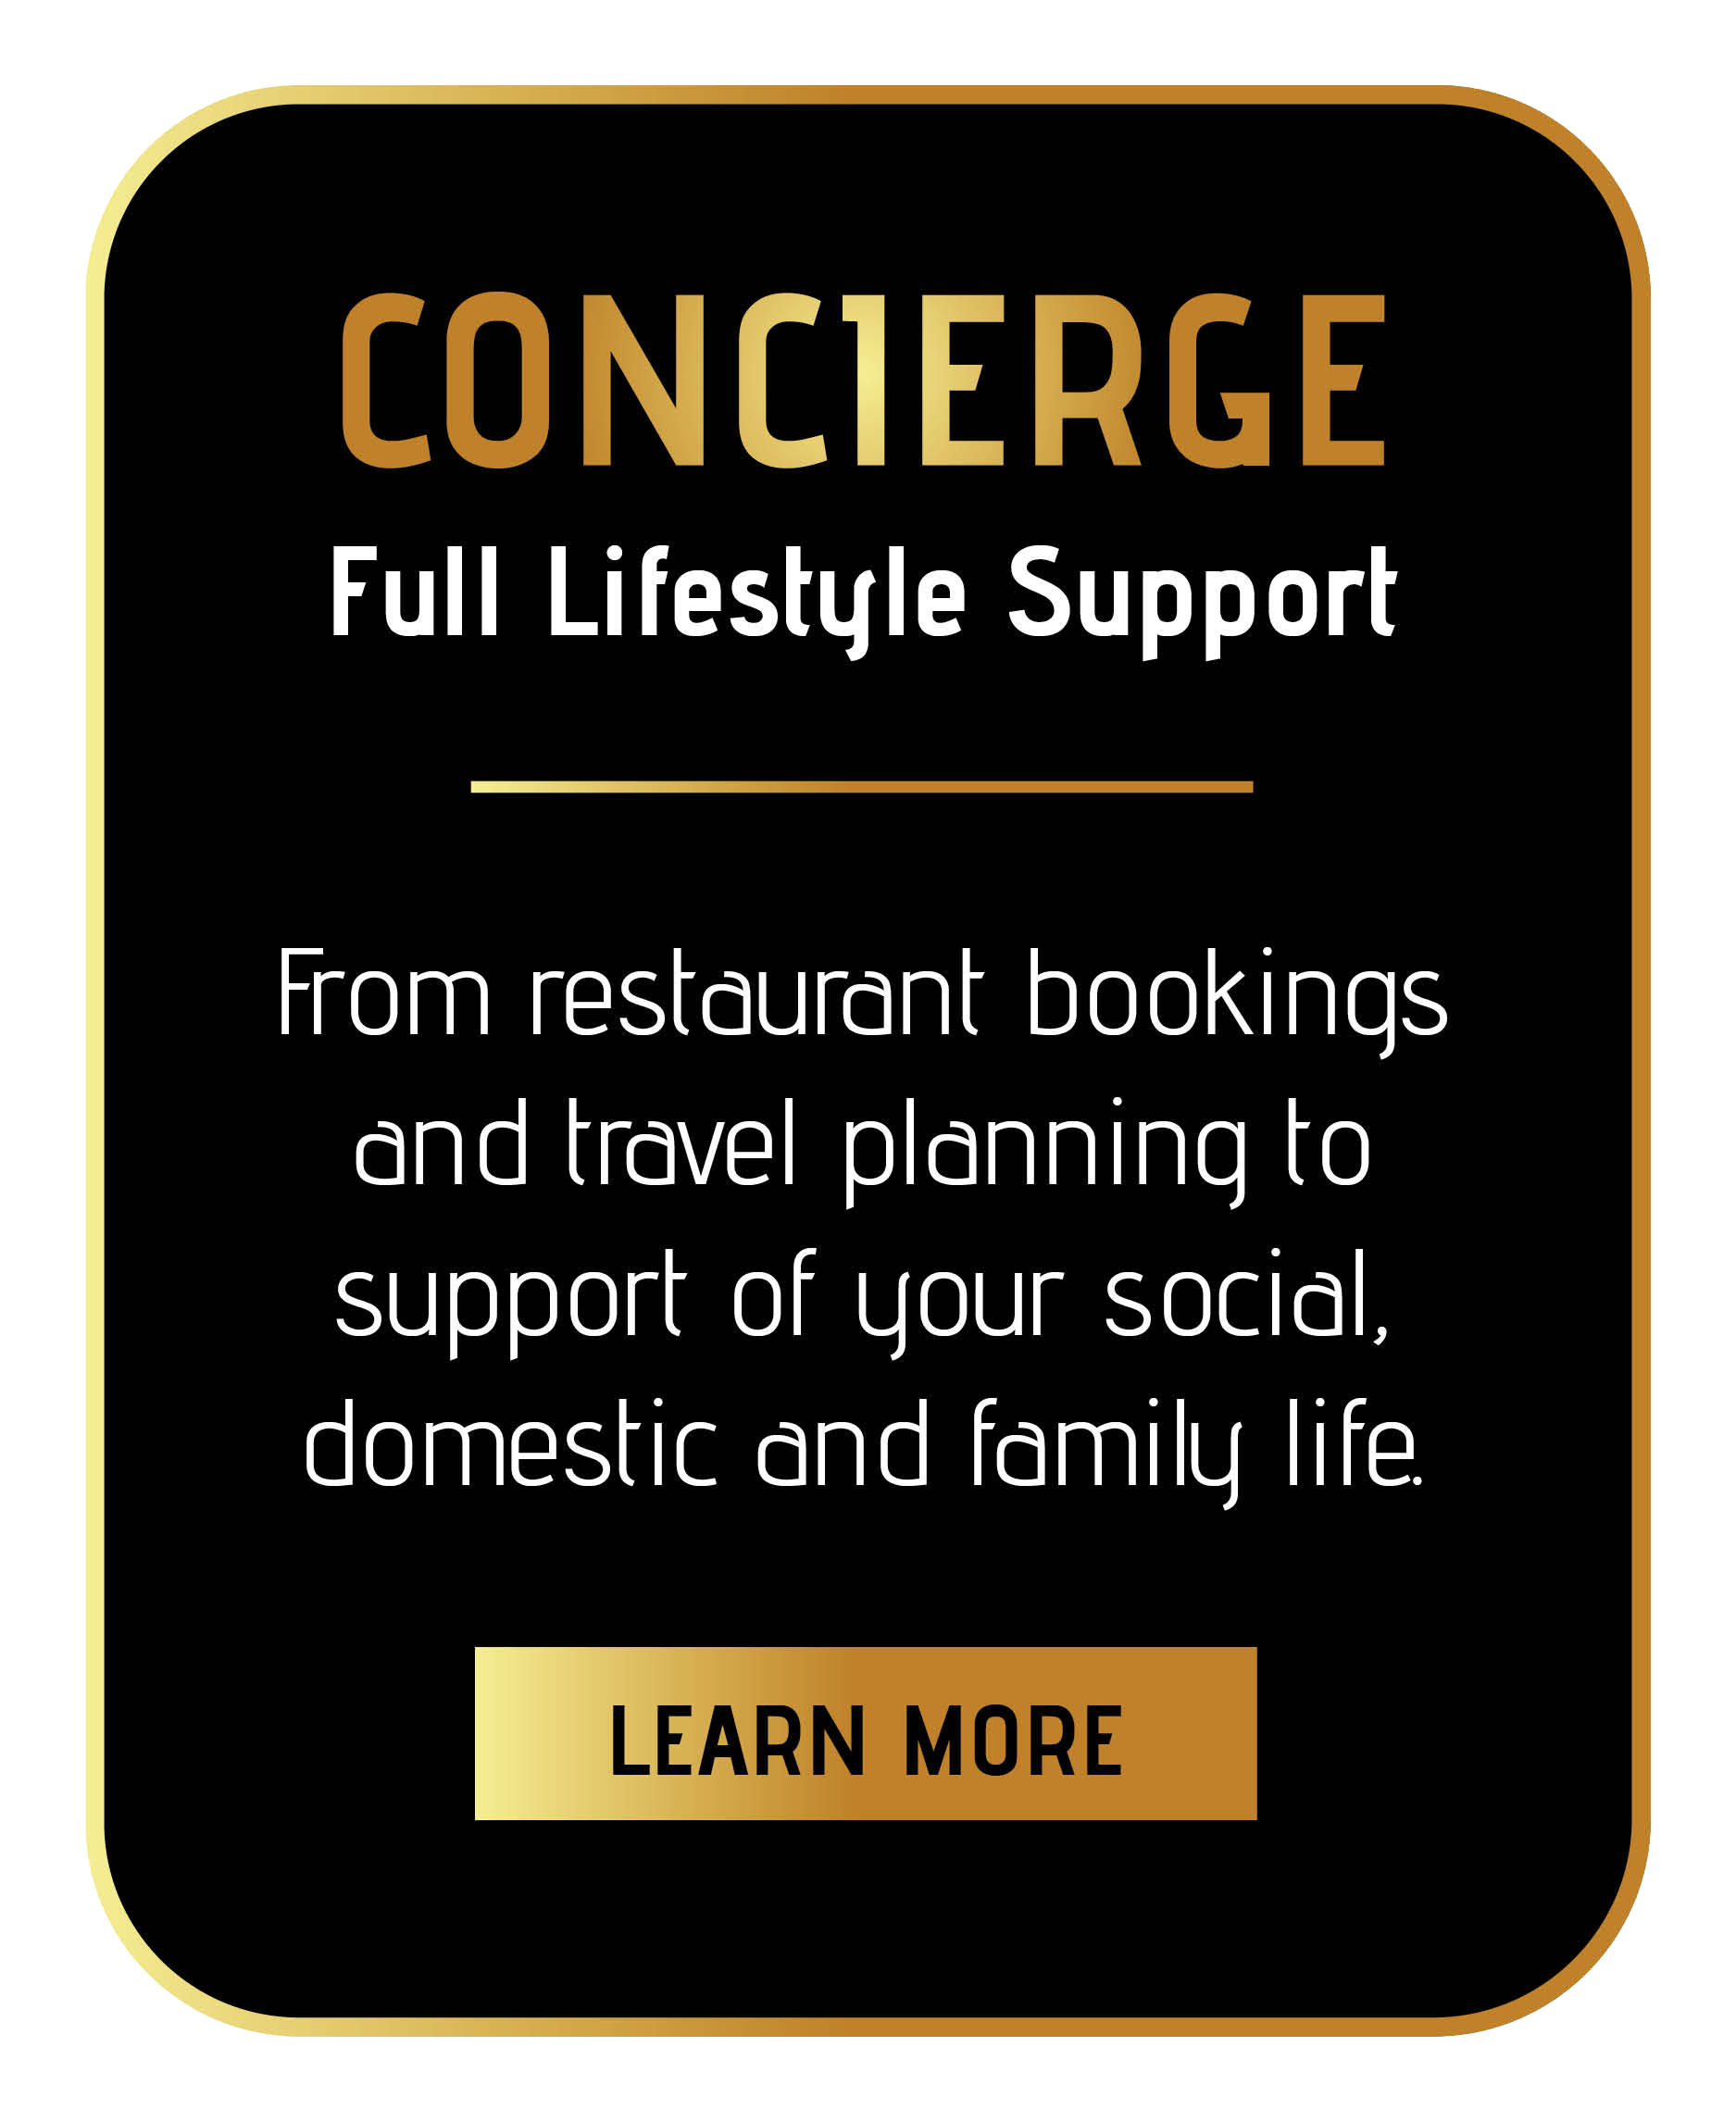 join sincura concierge membership for our award wining lifestyle services